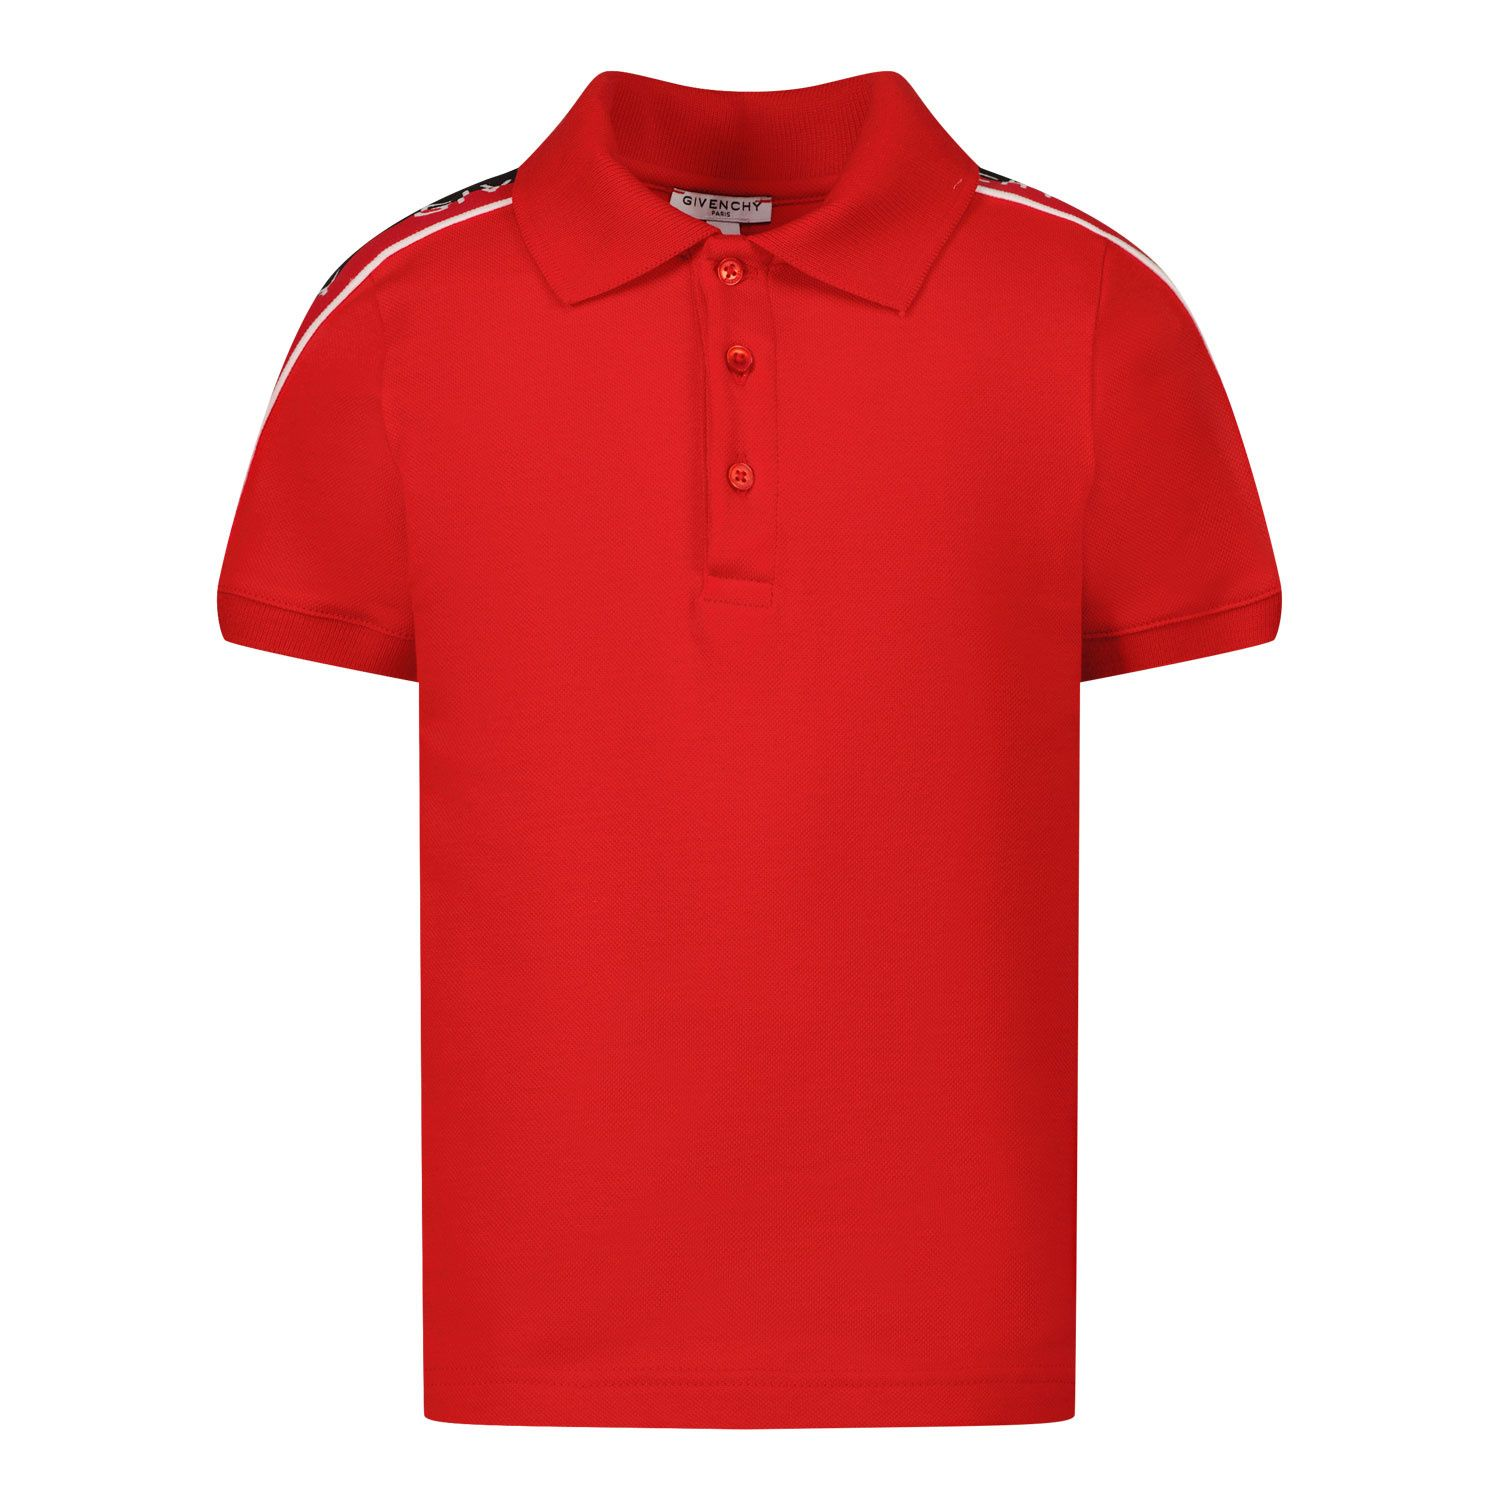 Picture of Givenchy H05160 baby poloshirt red